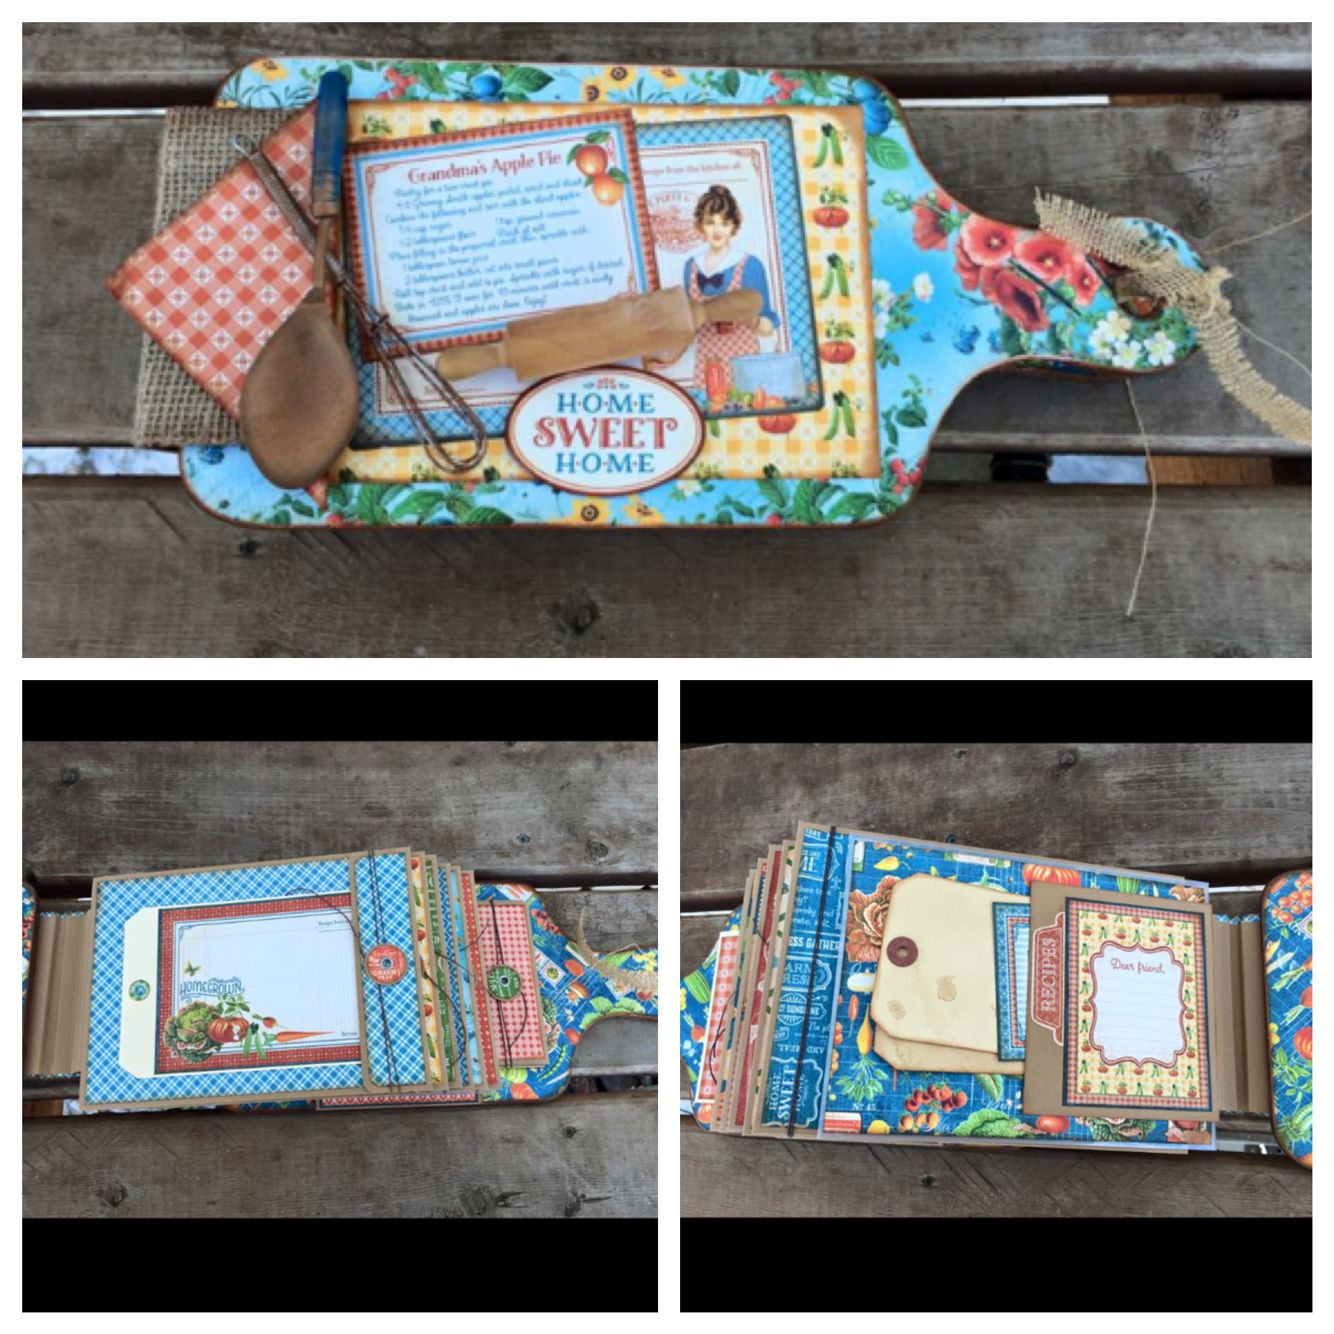 Cutting Board Recipe Book created by crafter Yvette Claeys.